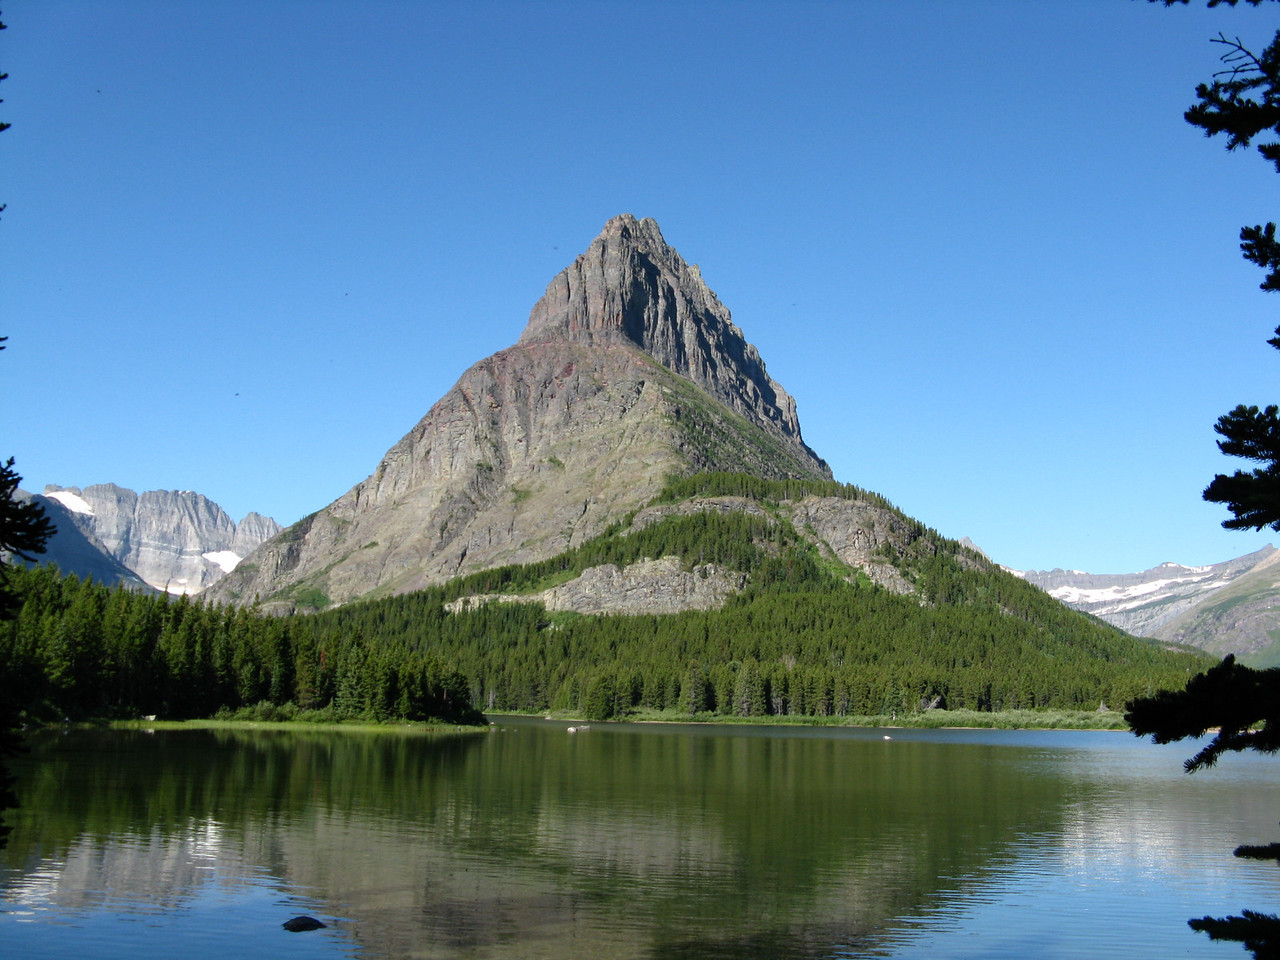 Grinnell Point across Swiftcurrent Lake from the south shore trail, looking southwest.